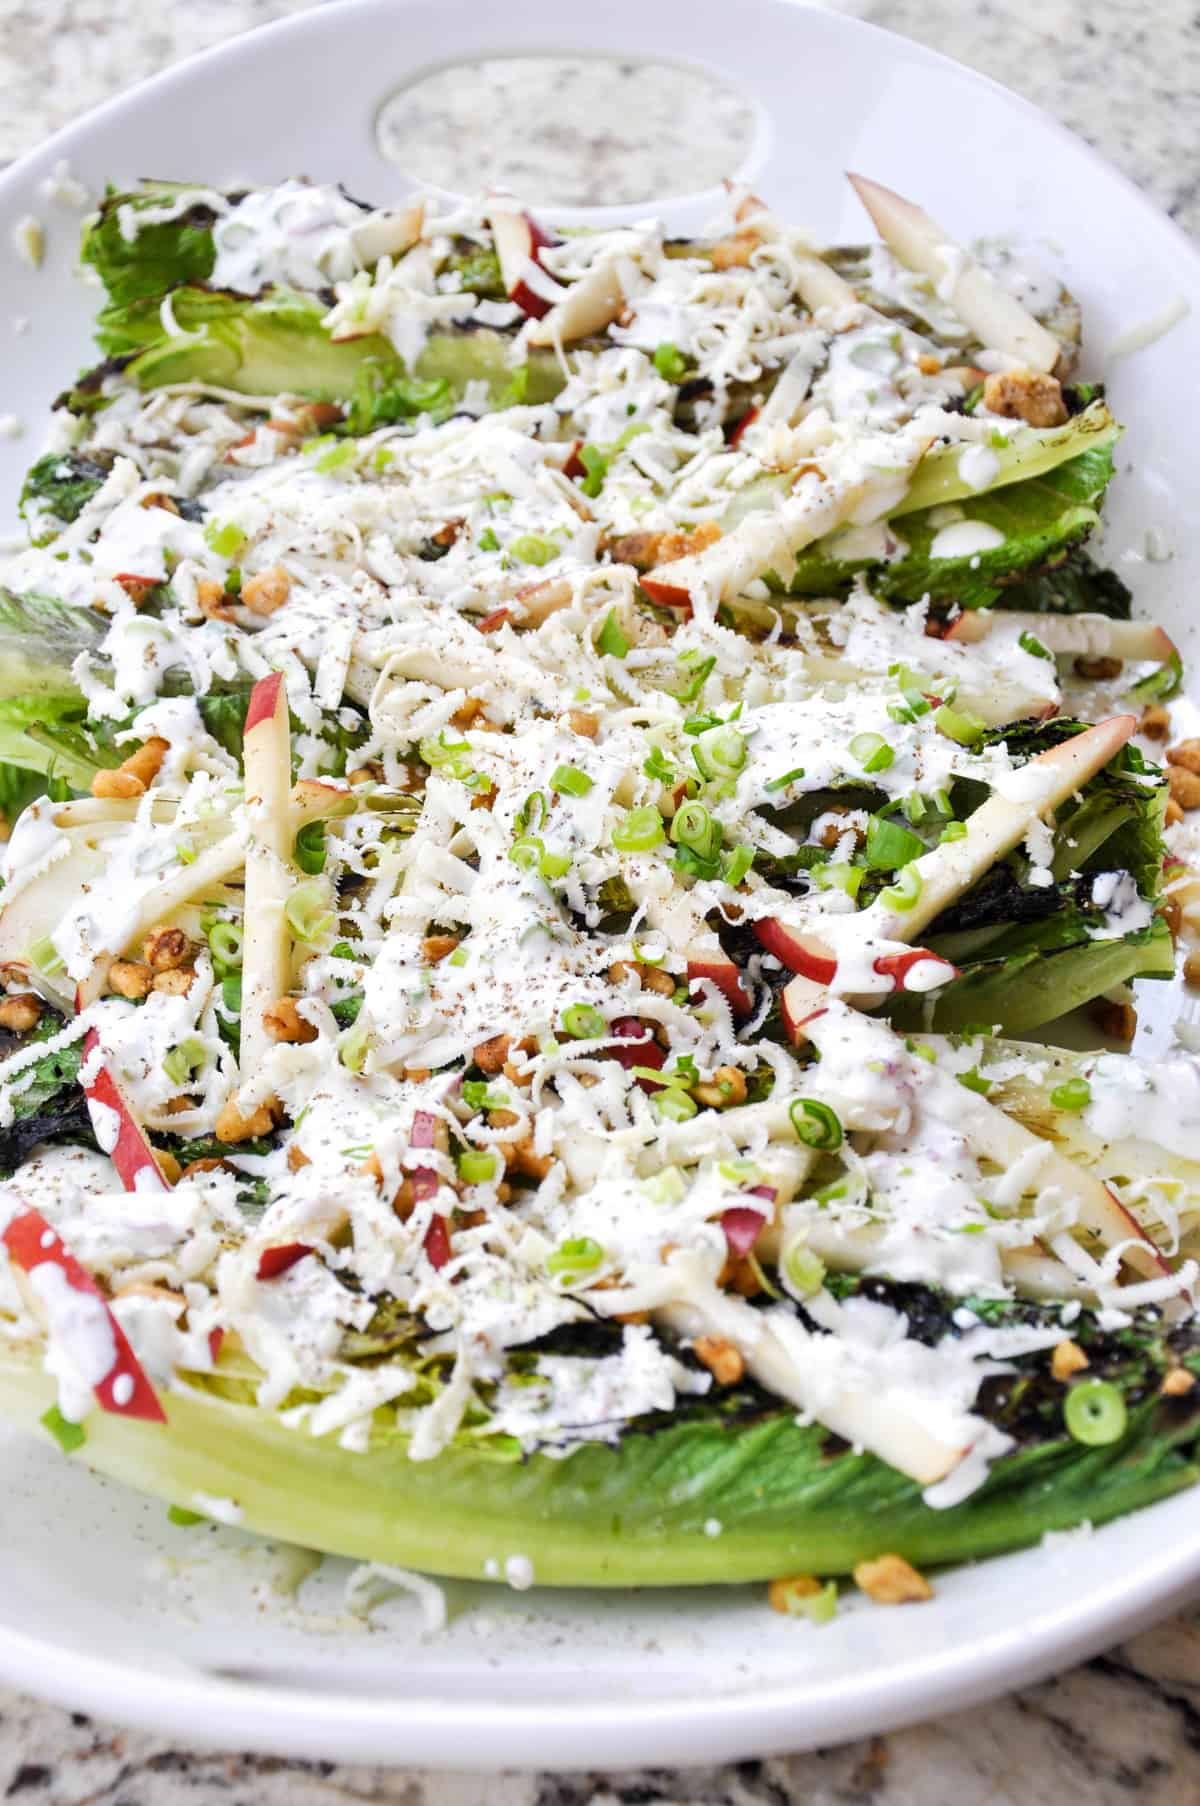 Grilled Romaine Salad with Crimson Pears and Candied Walnuts